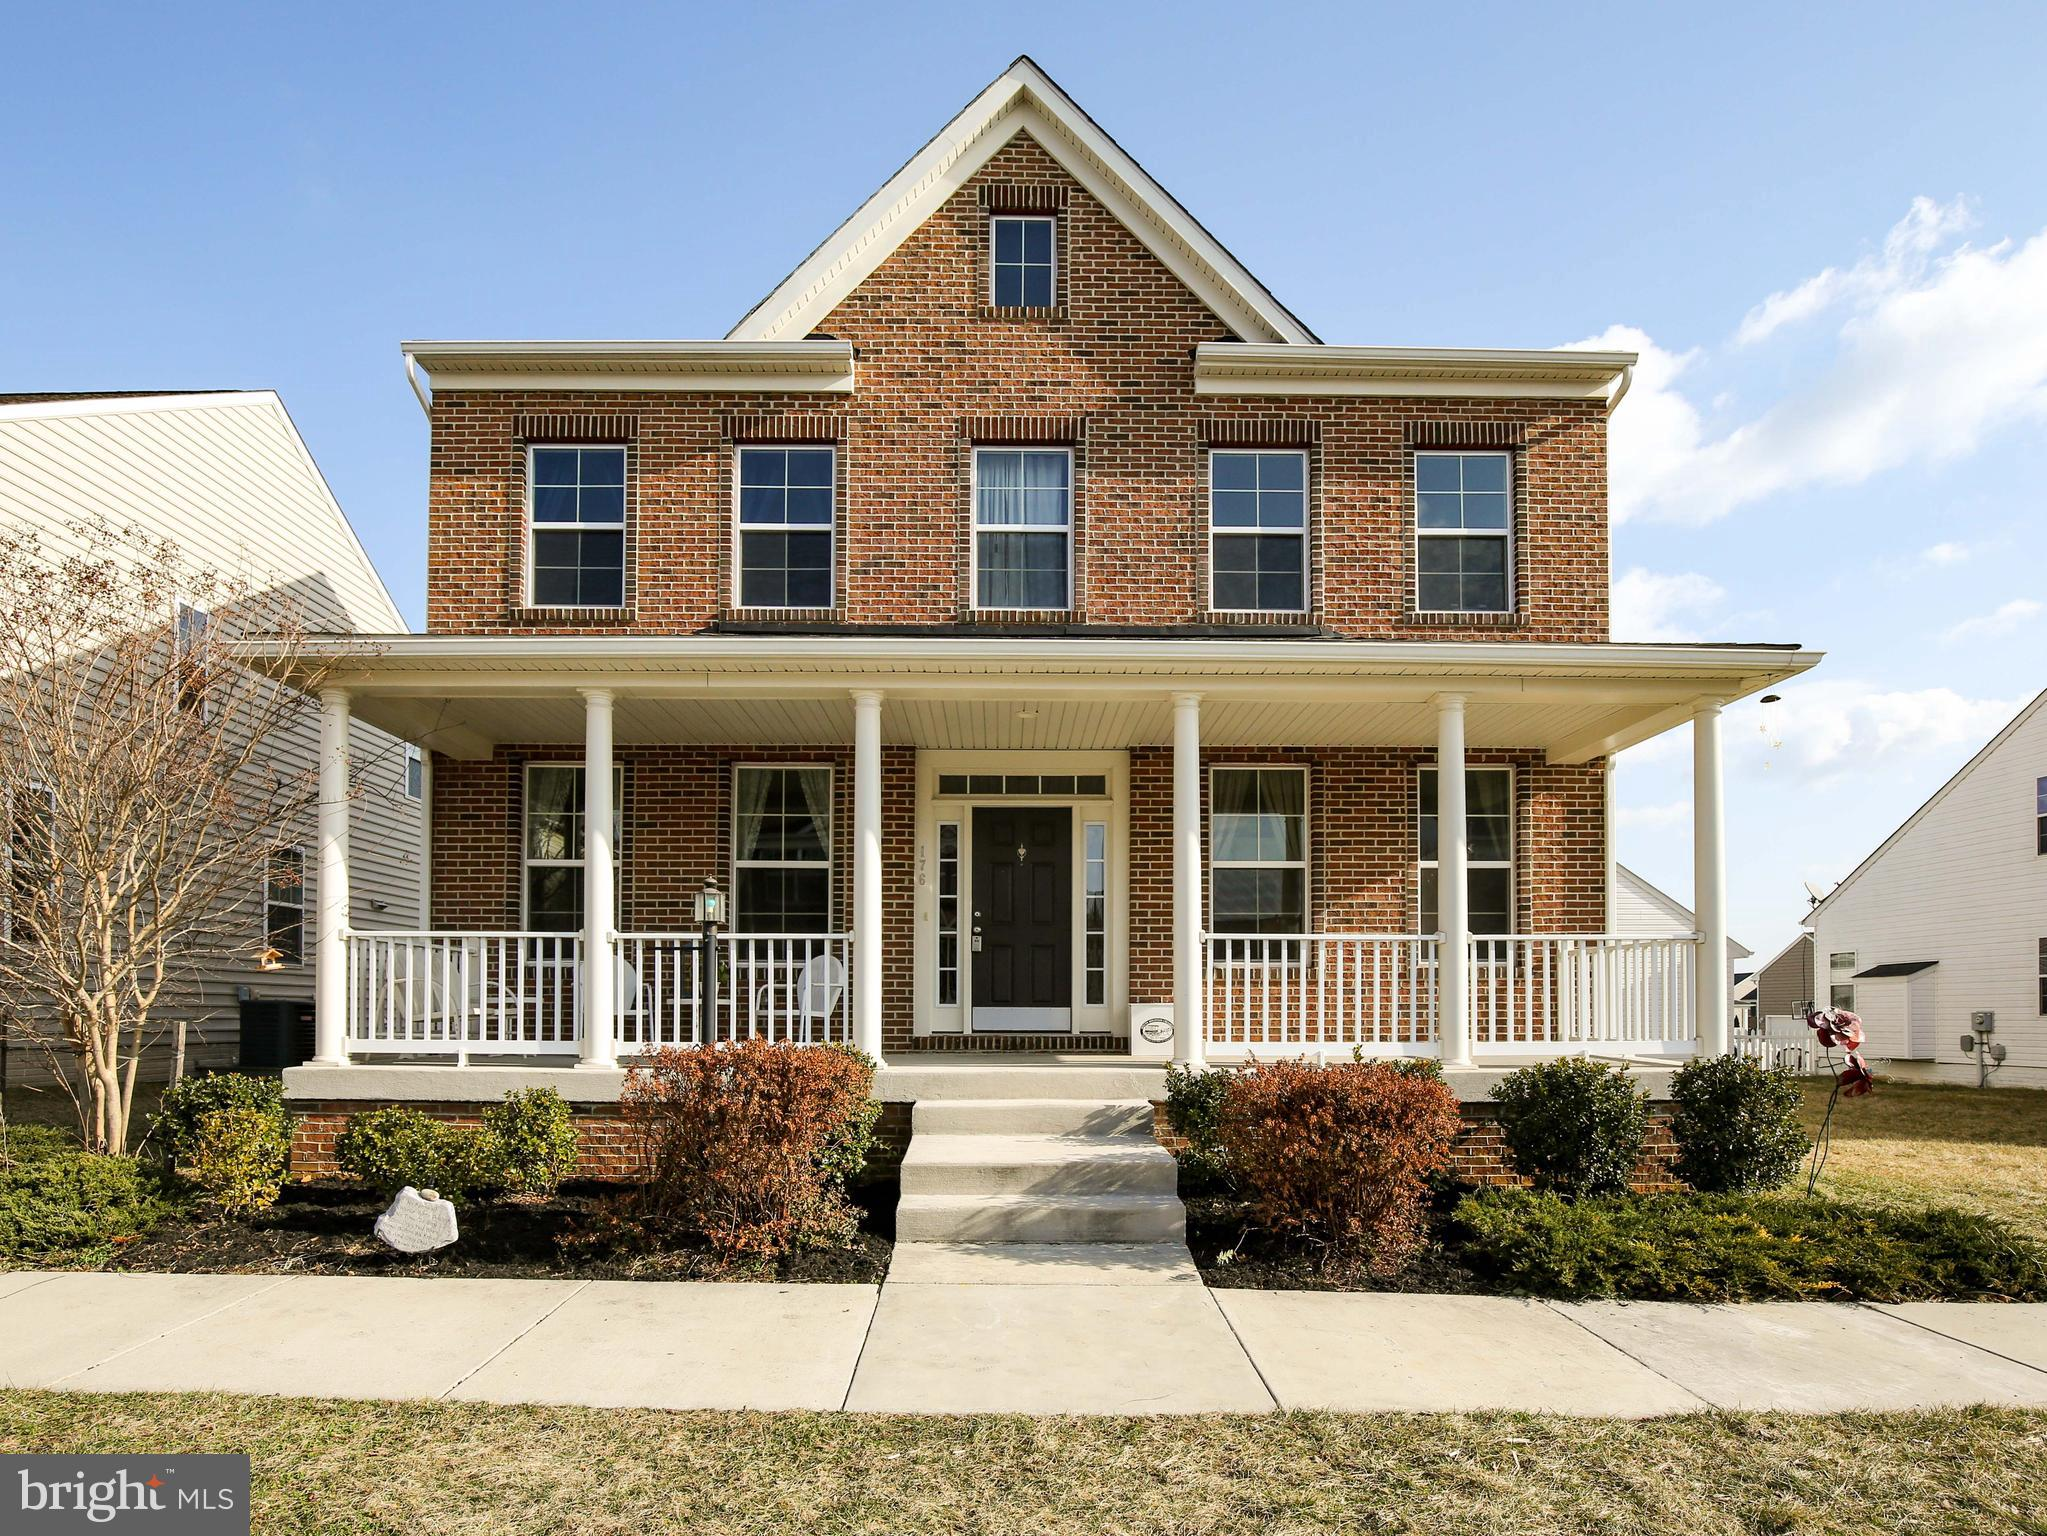 This lovely 4 bed, 3.5 bath home with welcoming front porch is all set for you to work from home fea